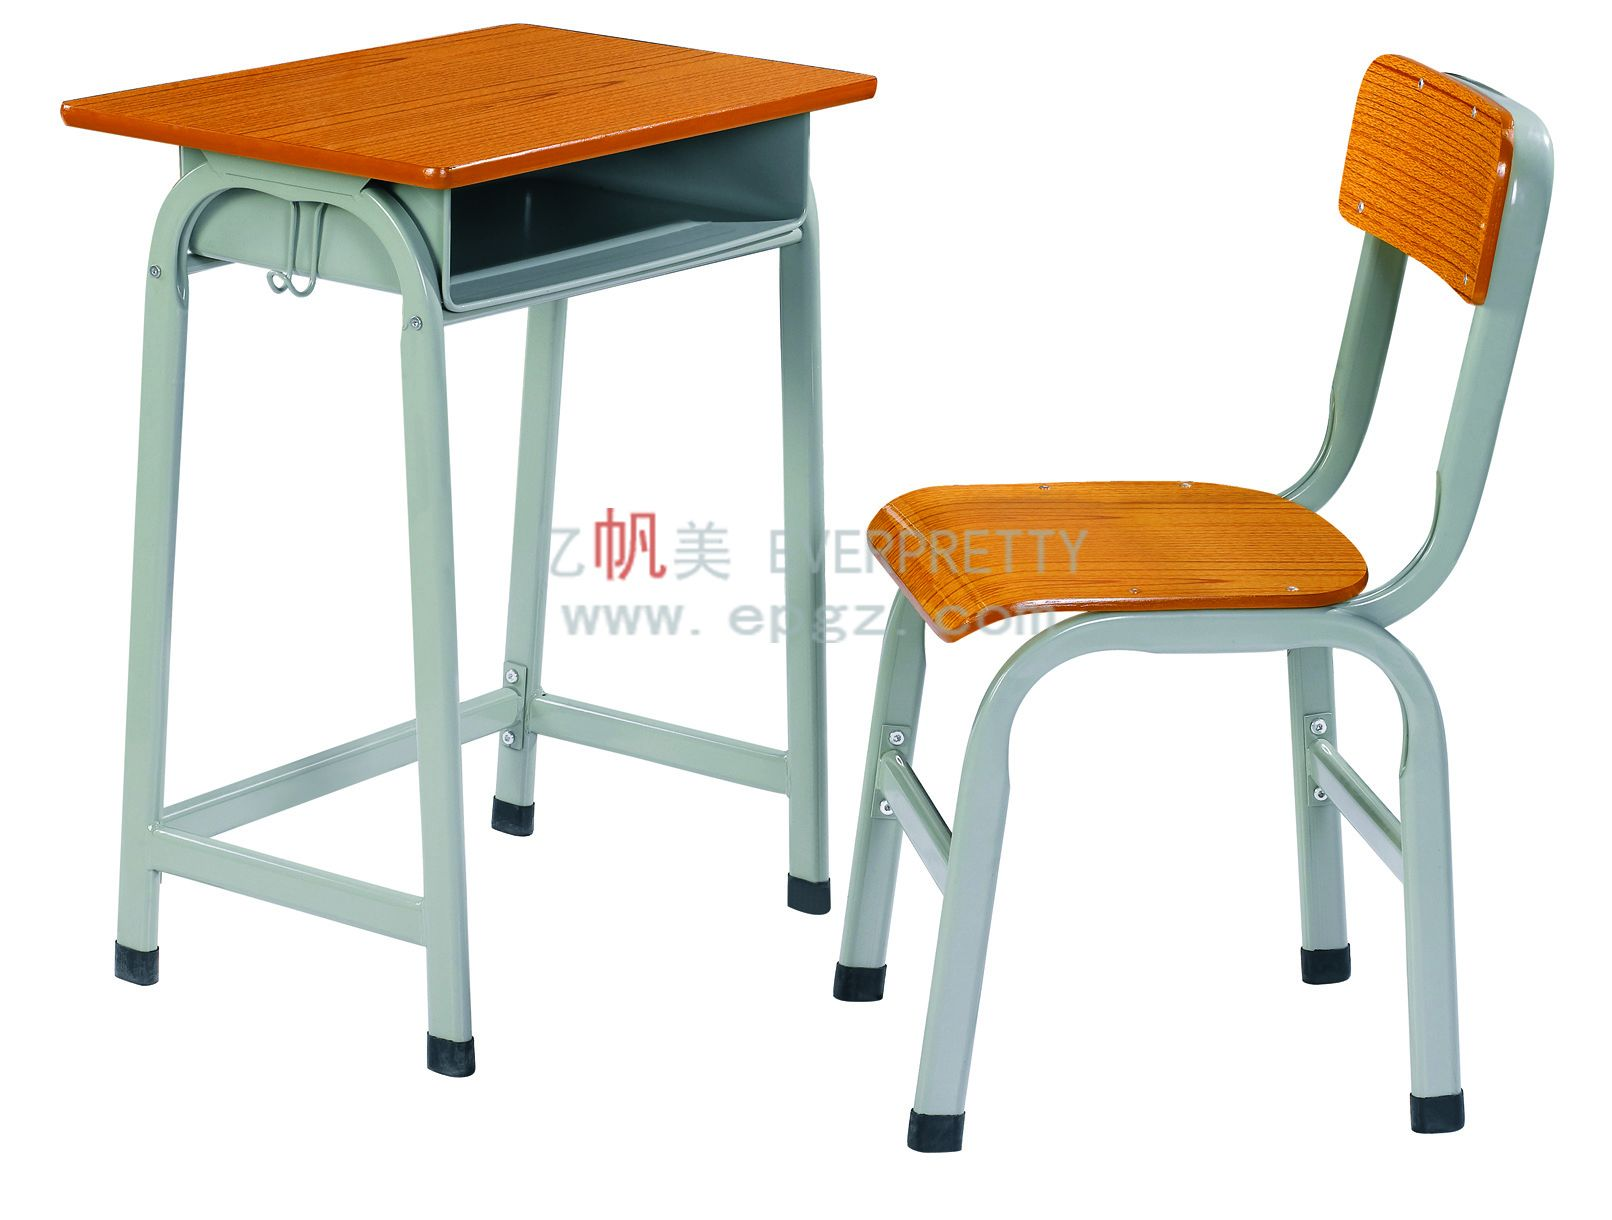 Old school desks for sale/Kids furniture/Used school furniture sale